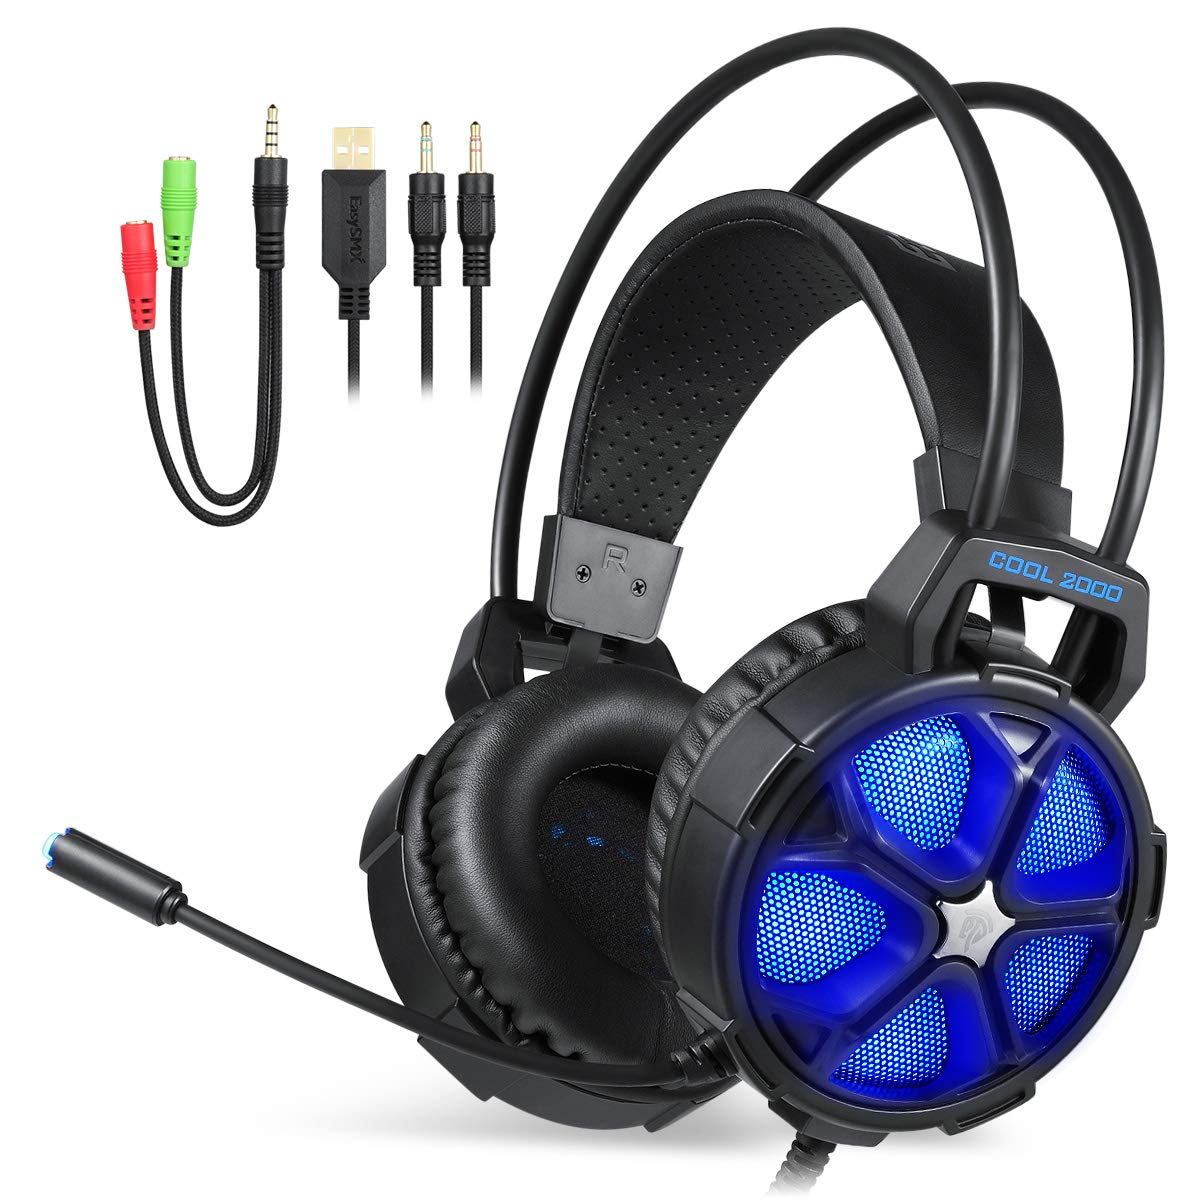 EasySMX Gaming Headset for PS4, PC, Xbox One Slim, Cool 2000 Over Ear Stereo Gaming Headphone with Noise Cancelling Mic, Multi LED Light for Computer Laptop Nintendo Switch.